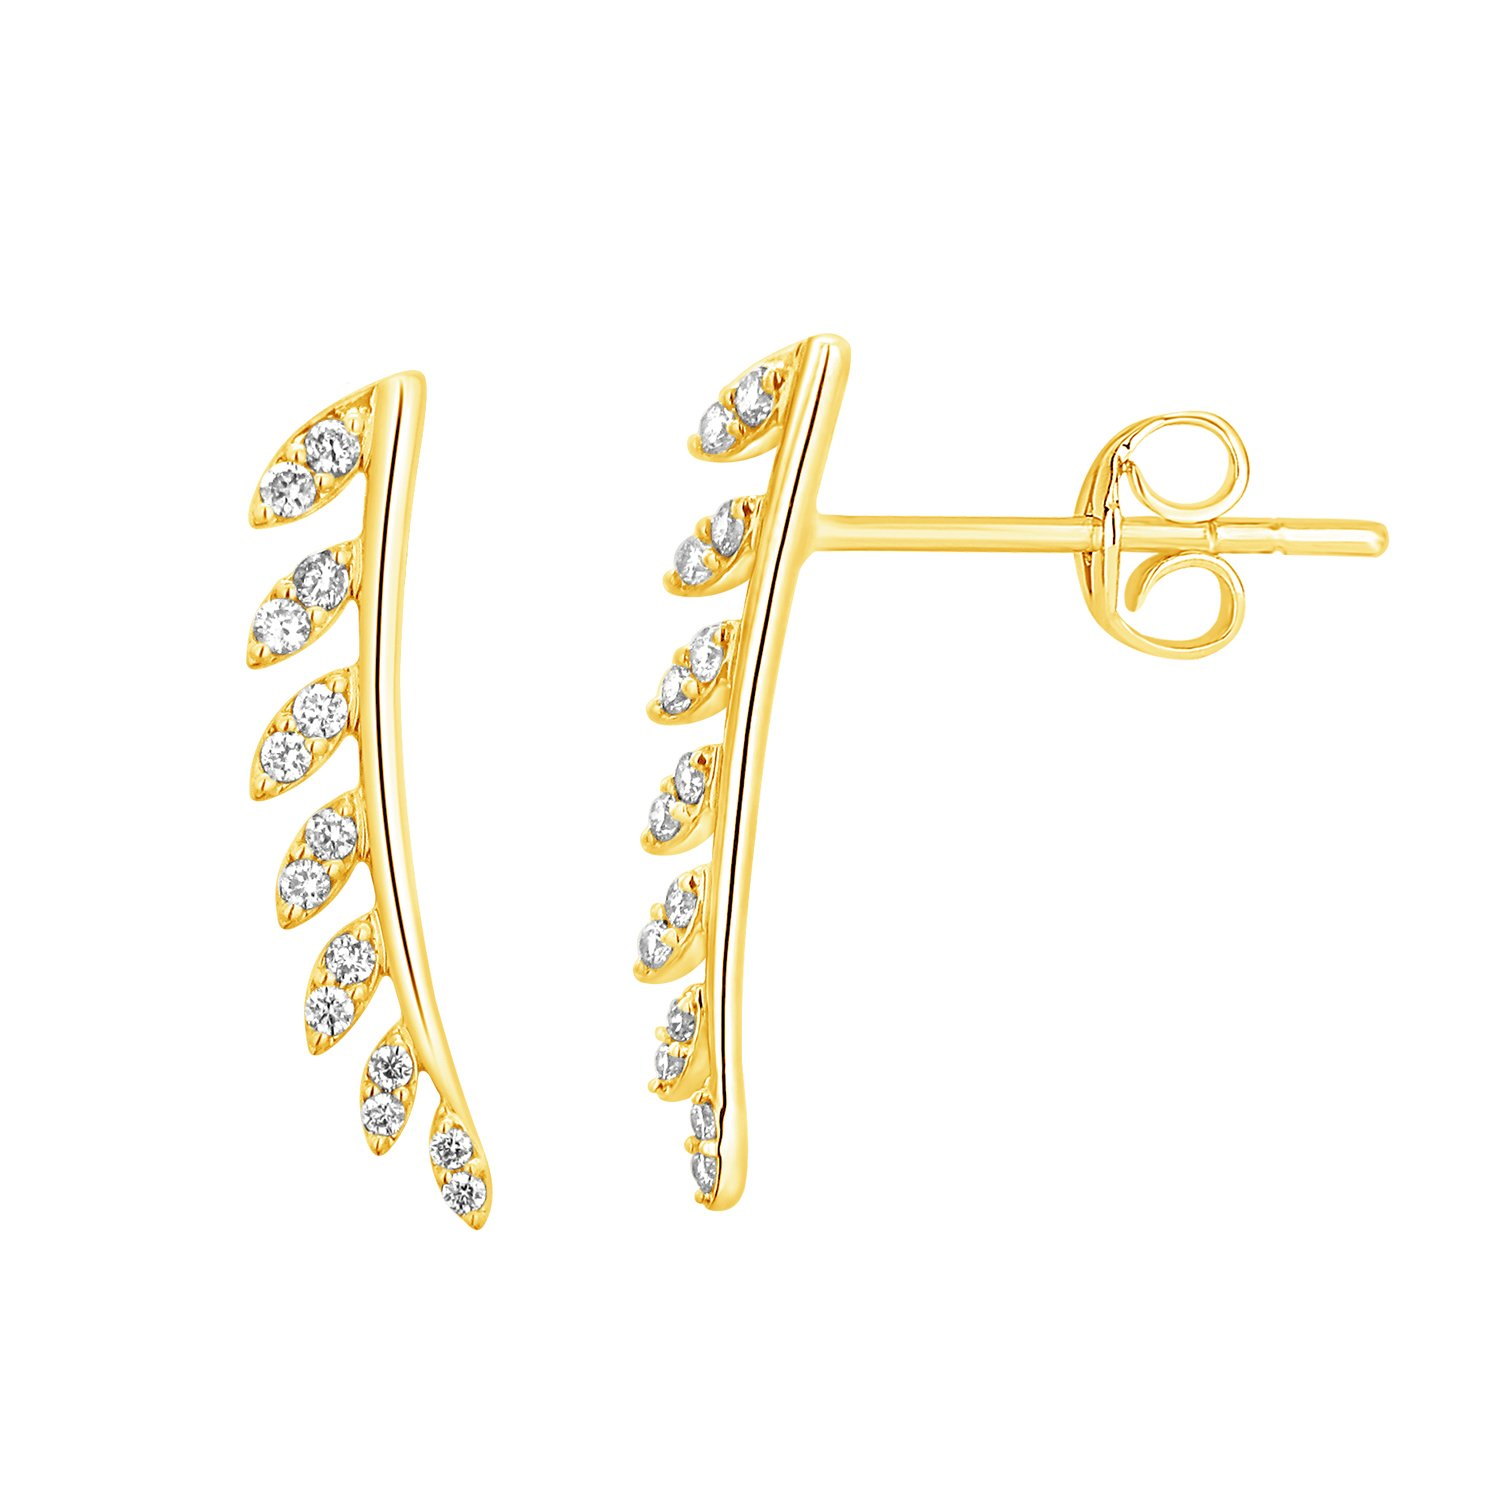 1/4 cttw Round Real Natural Diamond Ear Crawlers Climbers Earrings 10k Gold (yellow-gold)